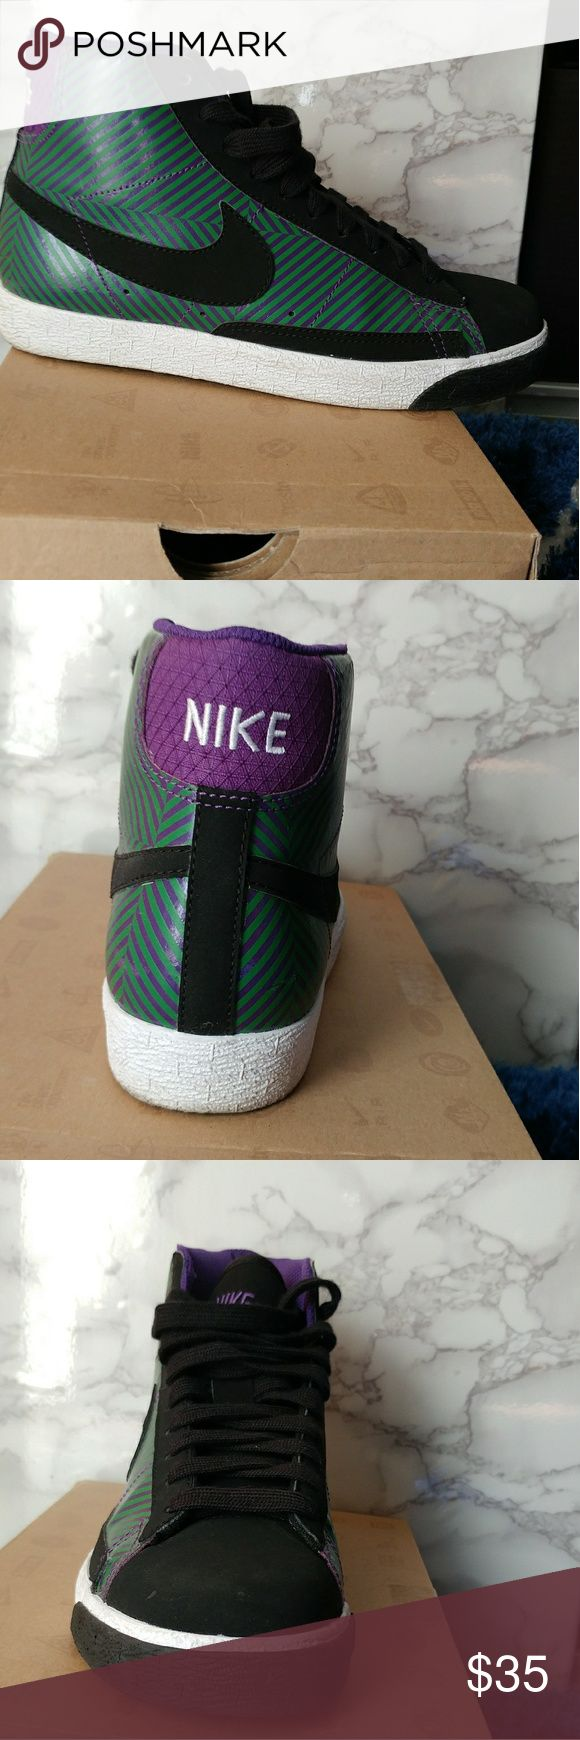 Nike Blazer Mid Gently use Nike Blazer Mid Big kids size 4.5. Boys or Girls. Great Condition #Make an offer??? Nike Shoes Sneakers